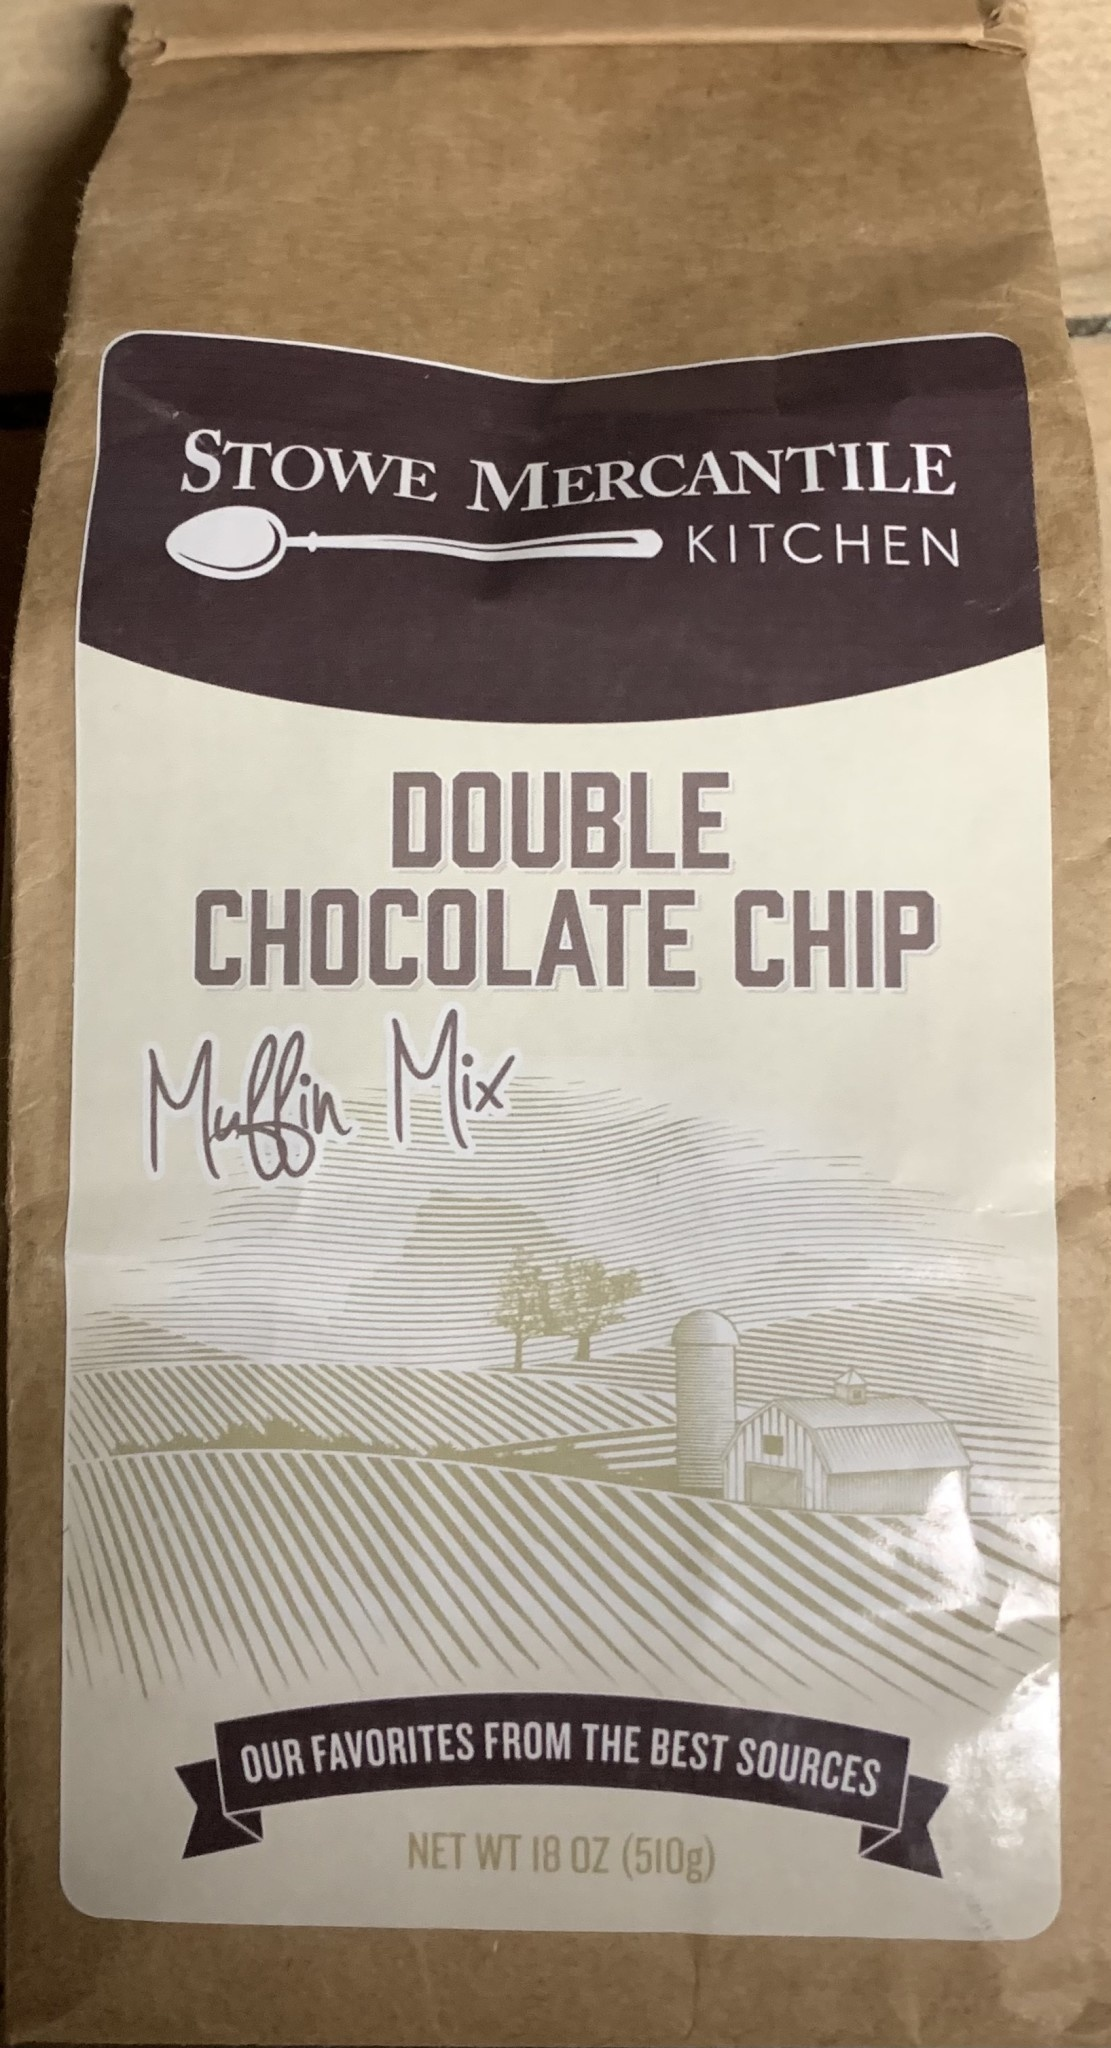 Stowe Mercantile Kitchen Muffin Mix Double Chocolate